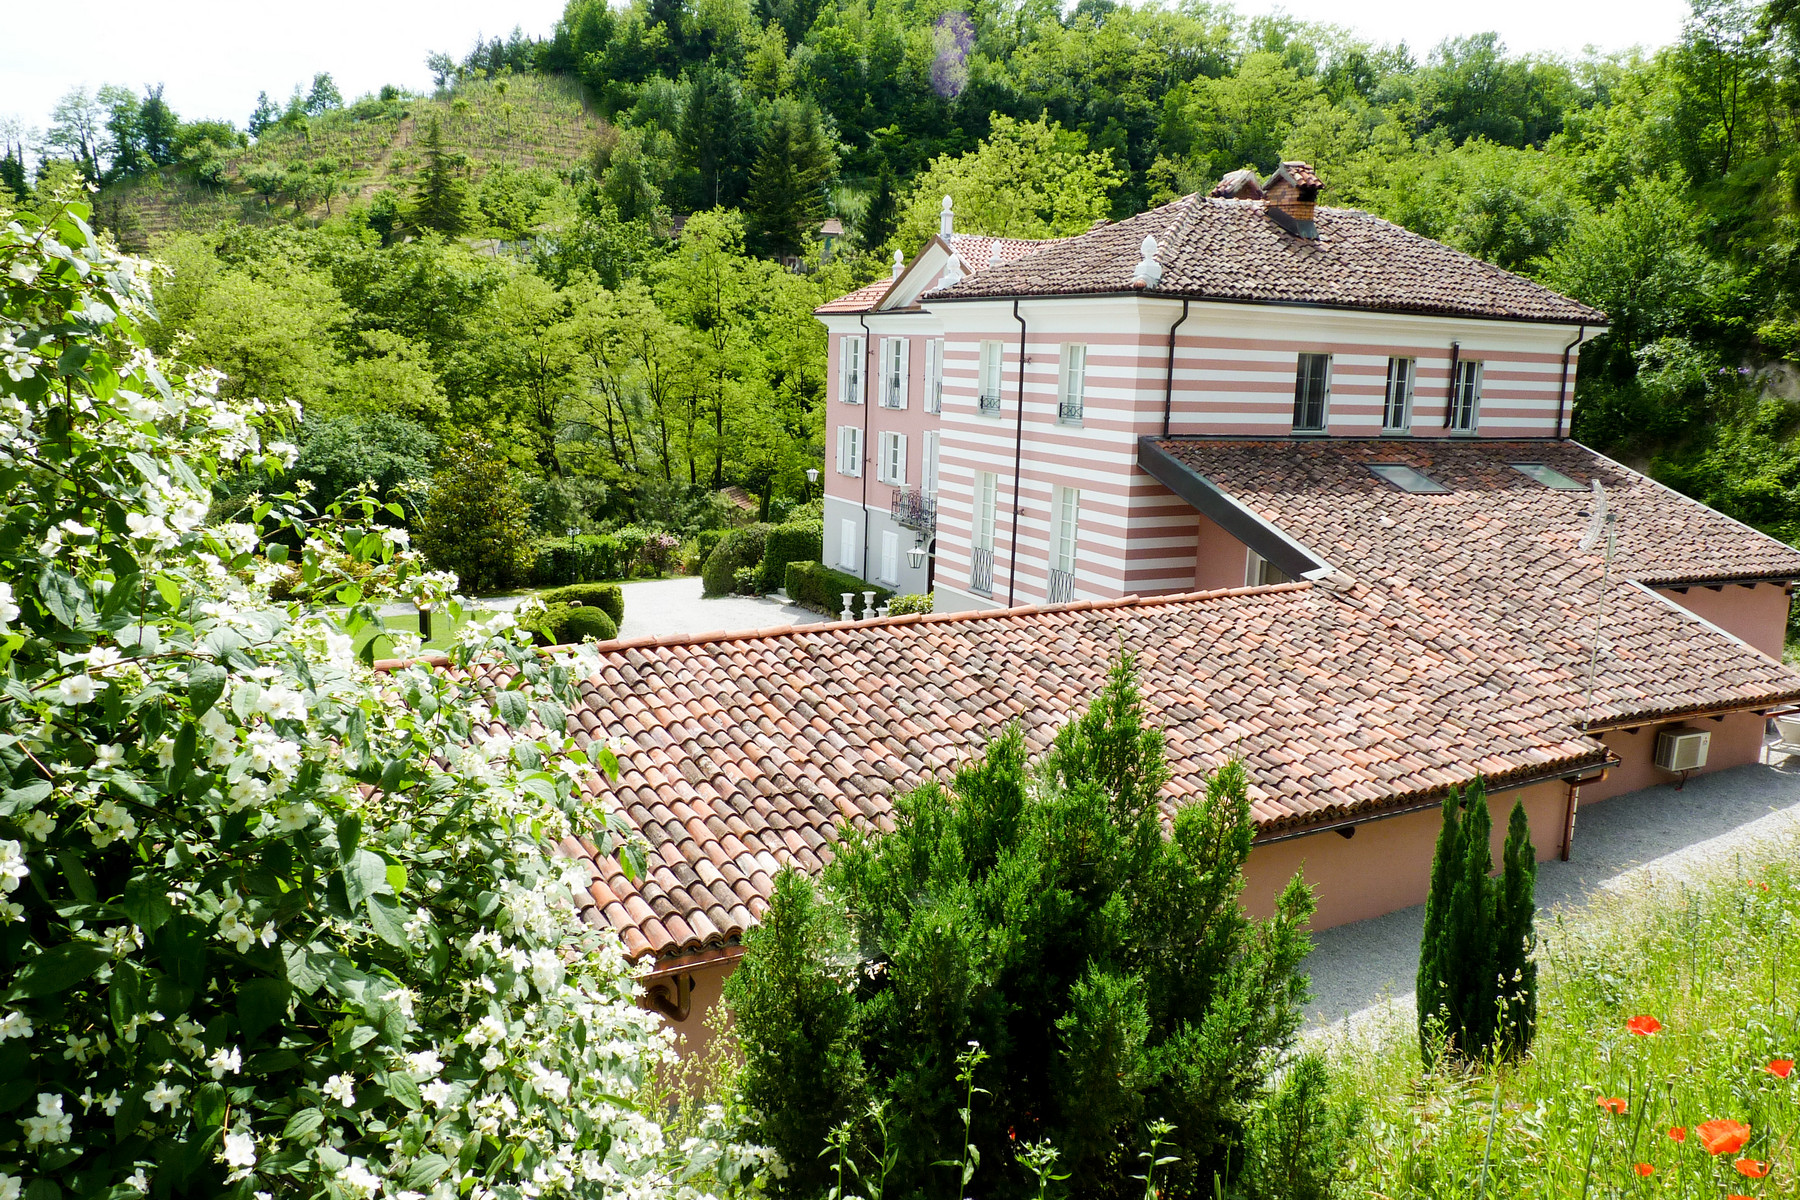 Additional photo for property listing at Incomparable property on a Piedmont hills Strada dei Botti Acqui Terme, Alessandria 15011 Italien